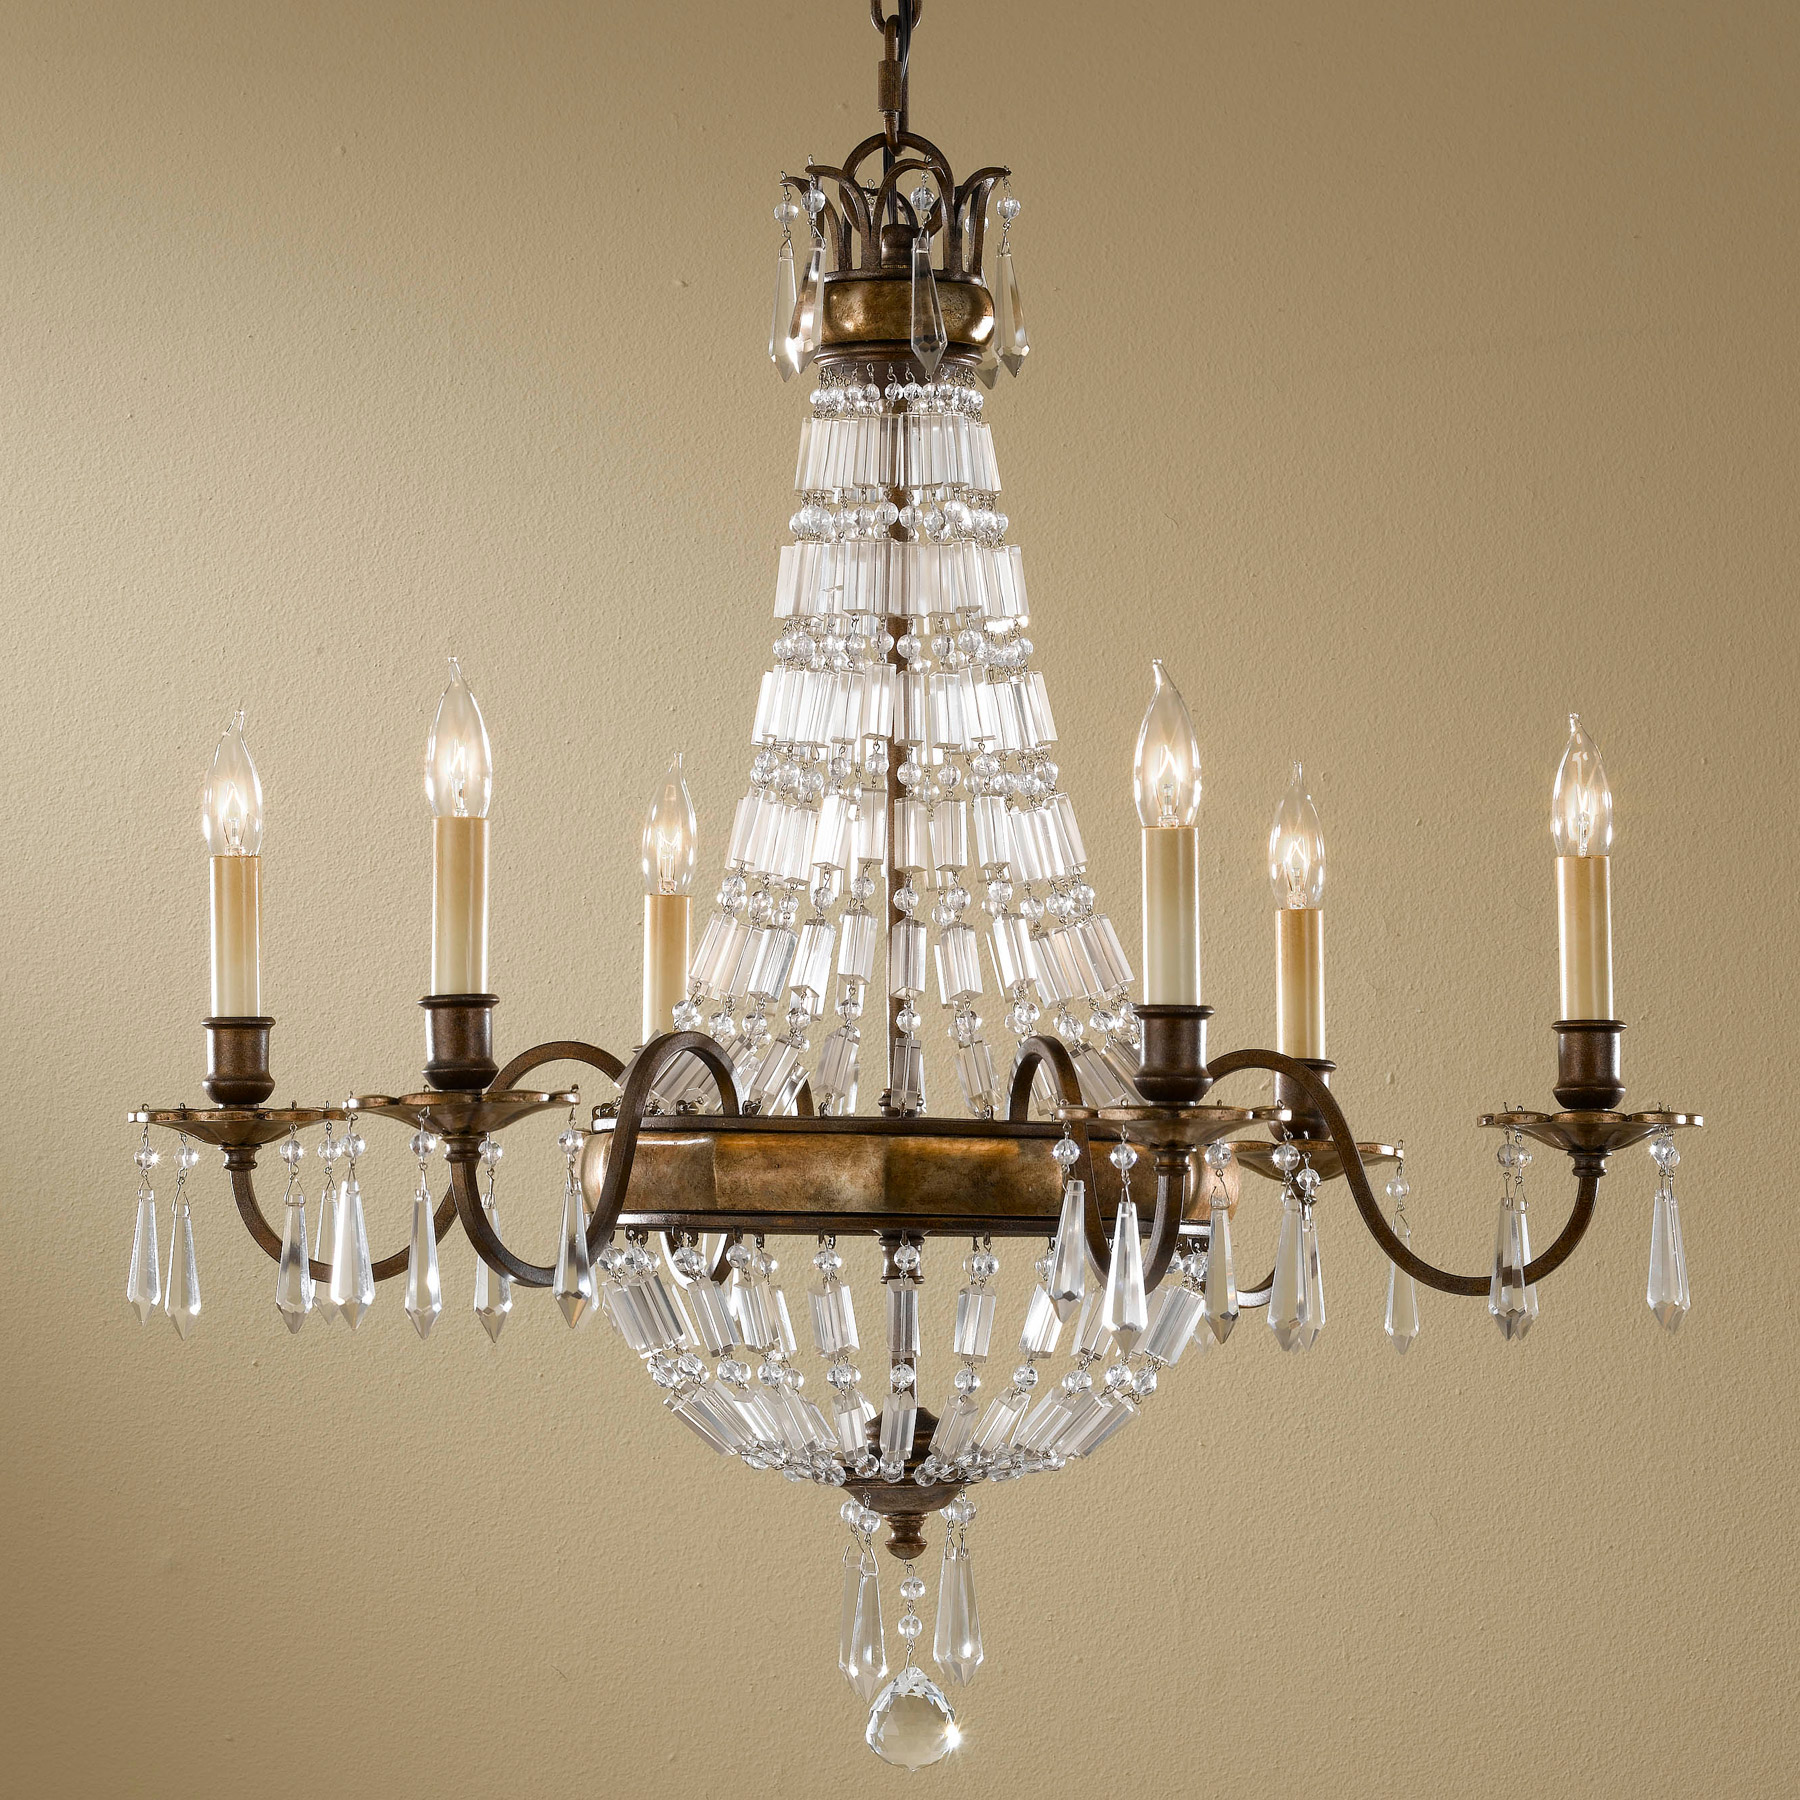 Murray feiss f24616obzbrb crystal bellini six light chandelier aloadofball Choice Image